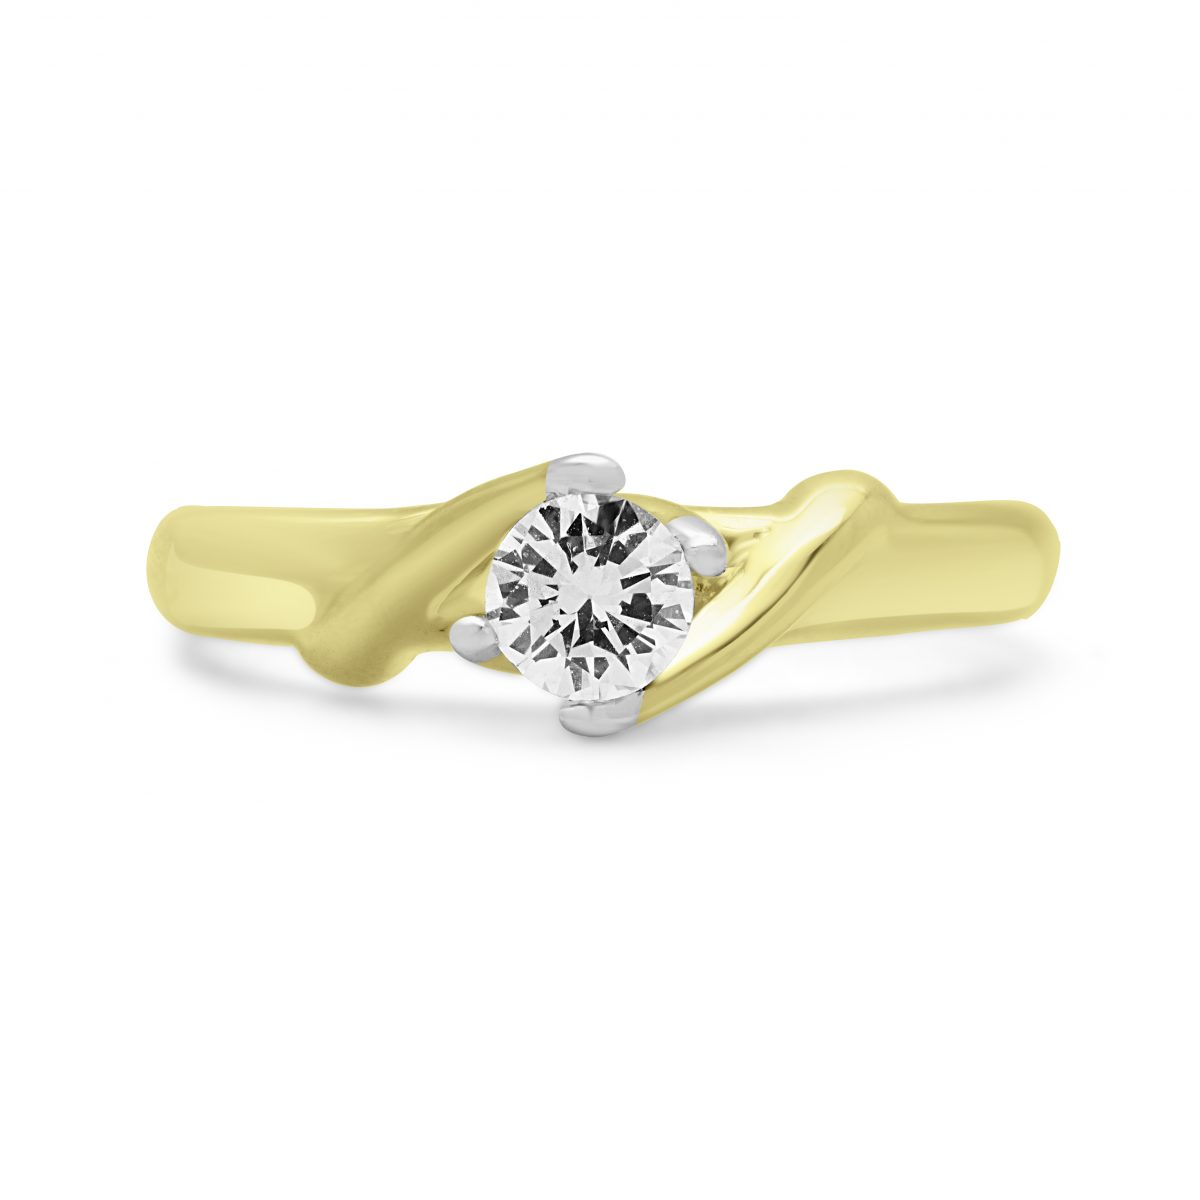 accents jewellery fullxfull diamond prong jewels six nxss j product r engagement il w ring solitaire